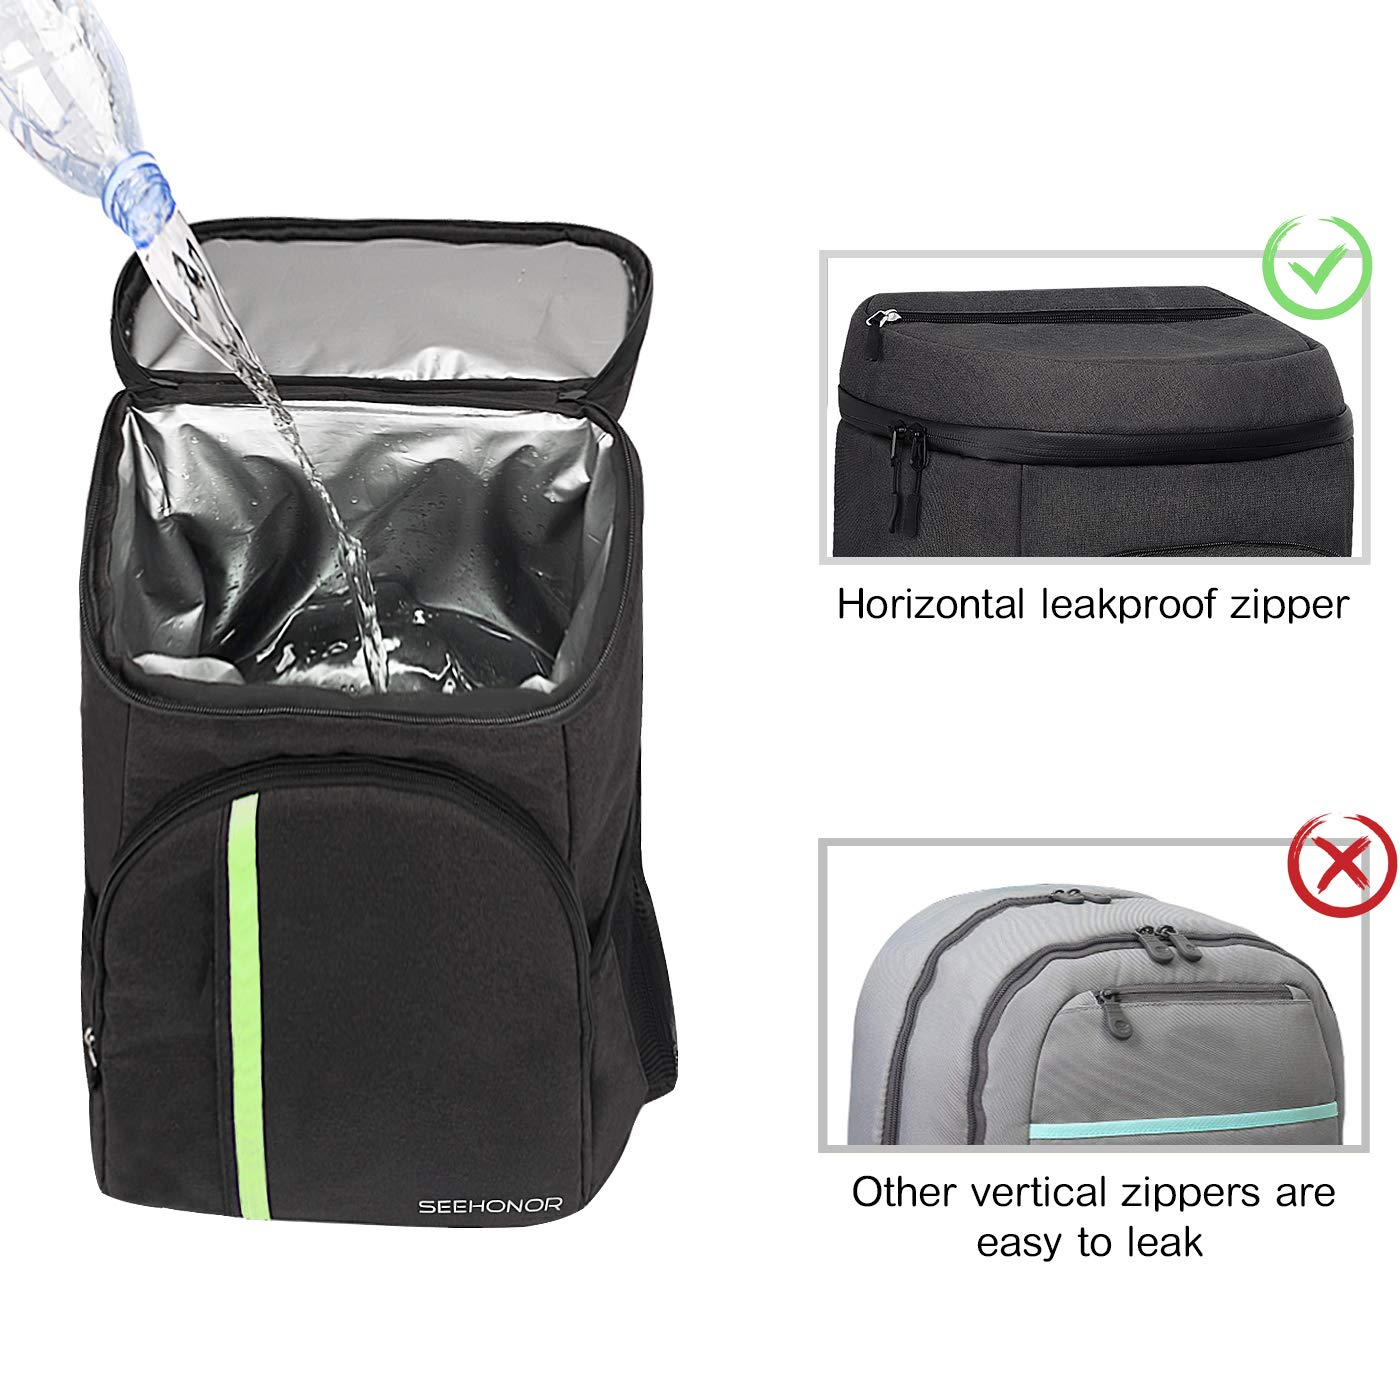 SEEHONOR Insulated Cooler Backpack Leakproof Soft Cooler Bag Lightweight Backpack with Cooler for Lunch Picnic Hiking Camping Beach Park Day Trips, 30 Cans